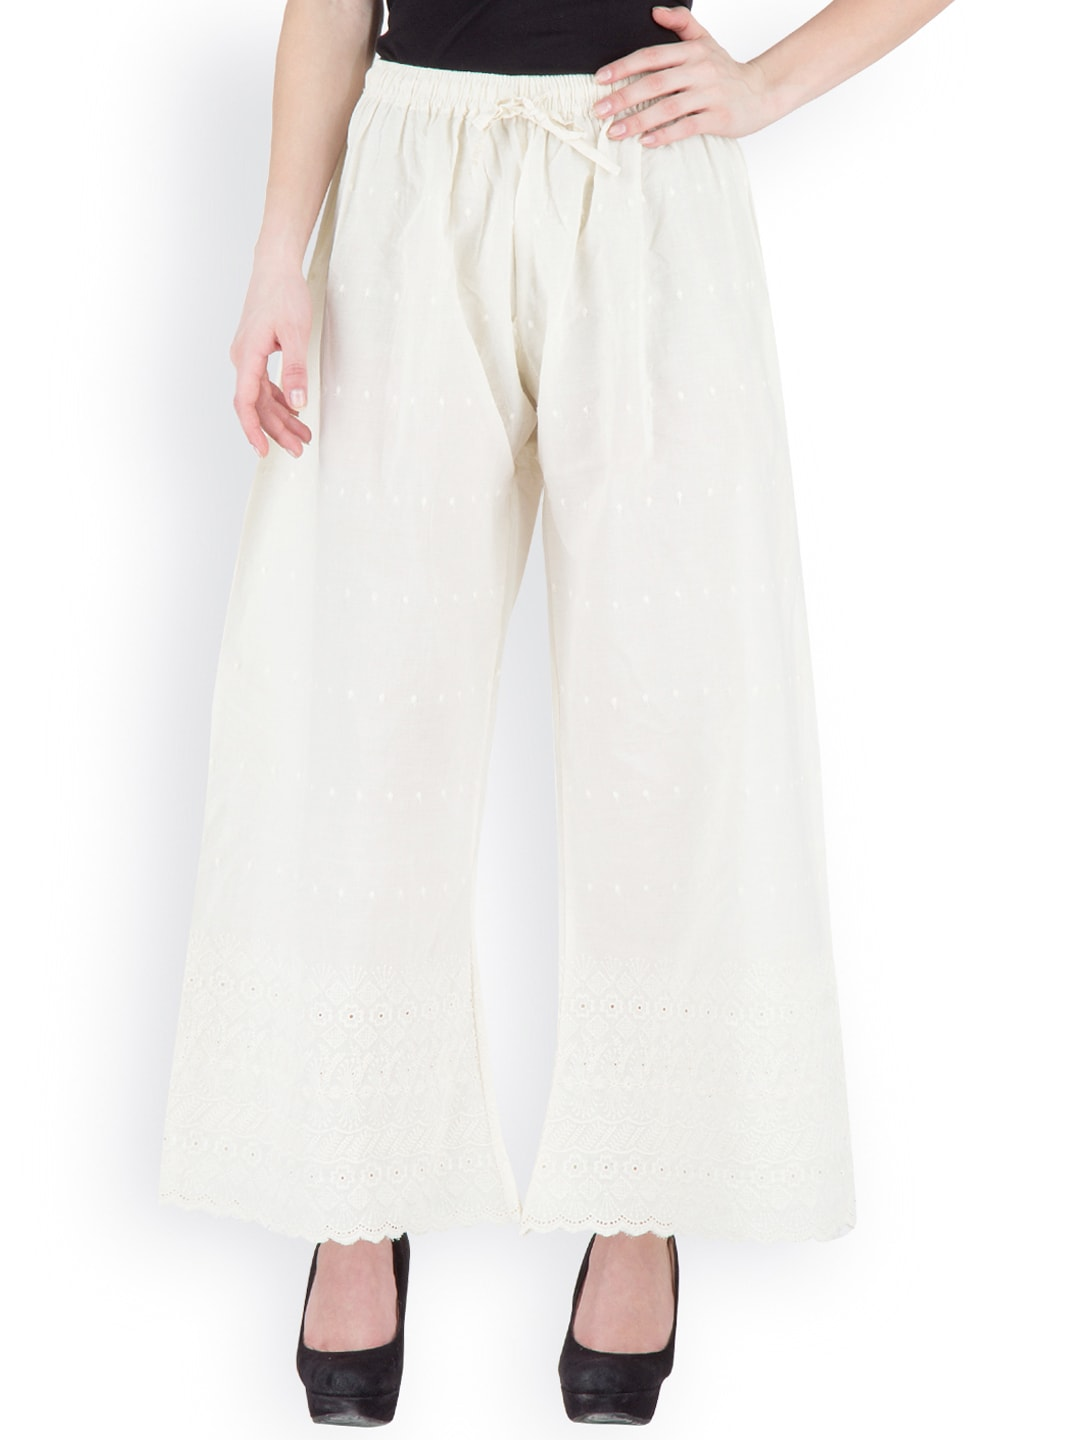 Castle Off-White Embroidered Palazzo Trousers